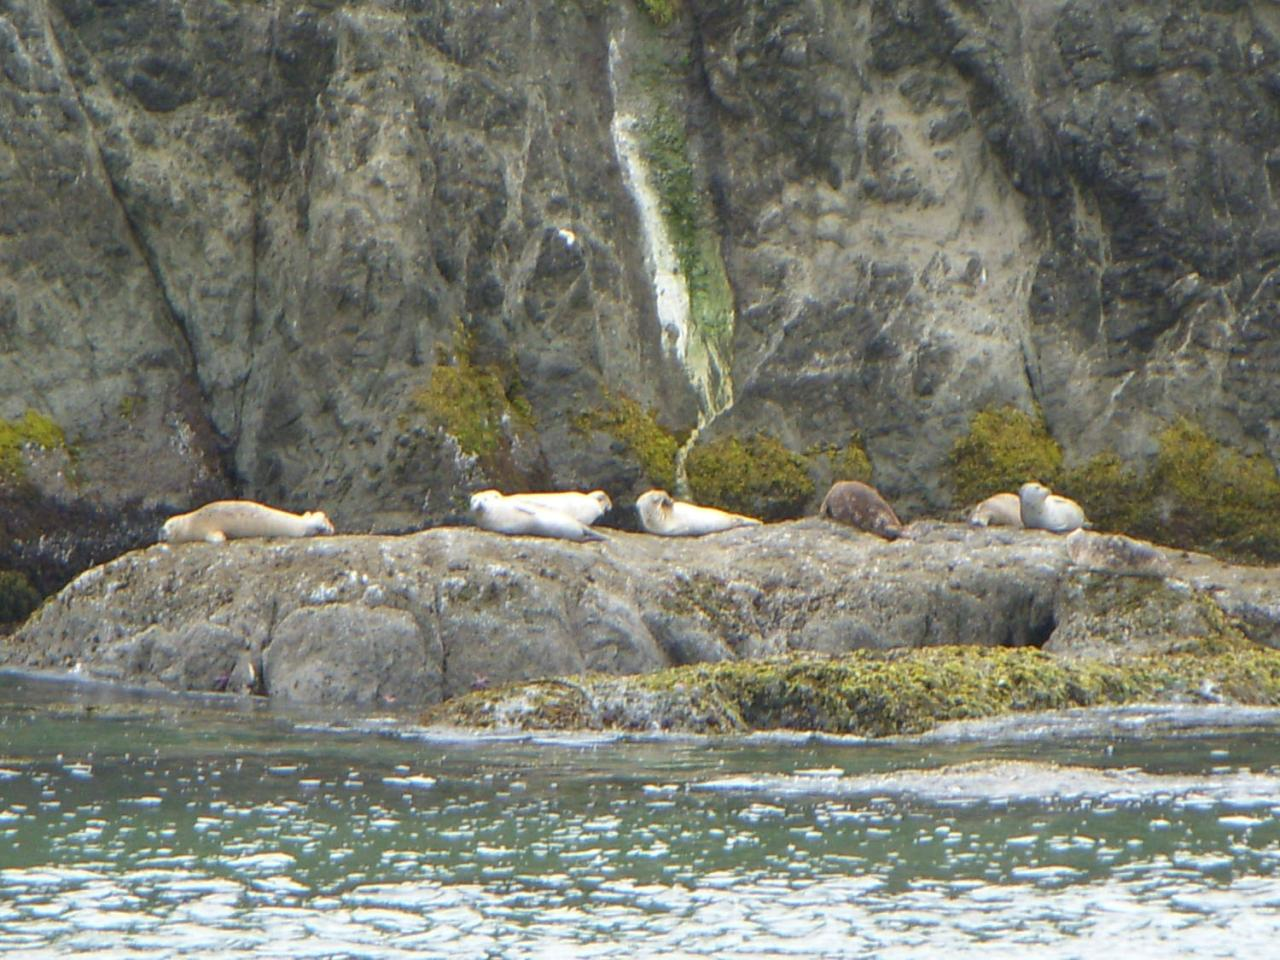 Seven Harbor Seals were hauled out on the rocks just in front of Elephant Rock at Coquille Point.